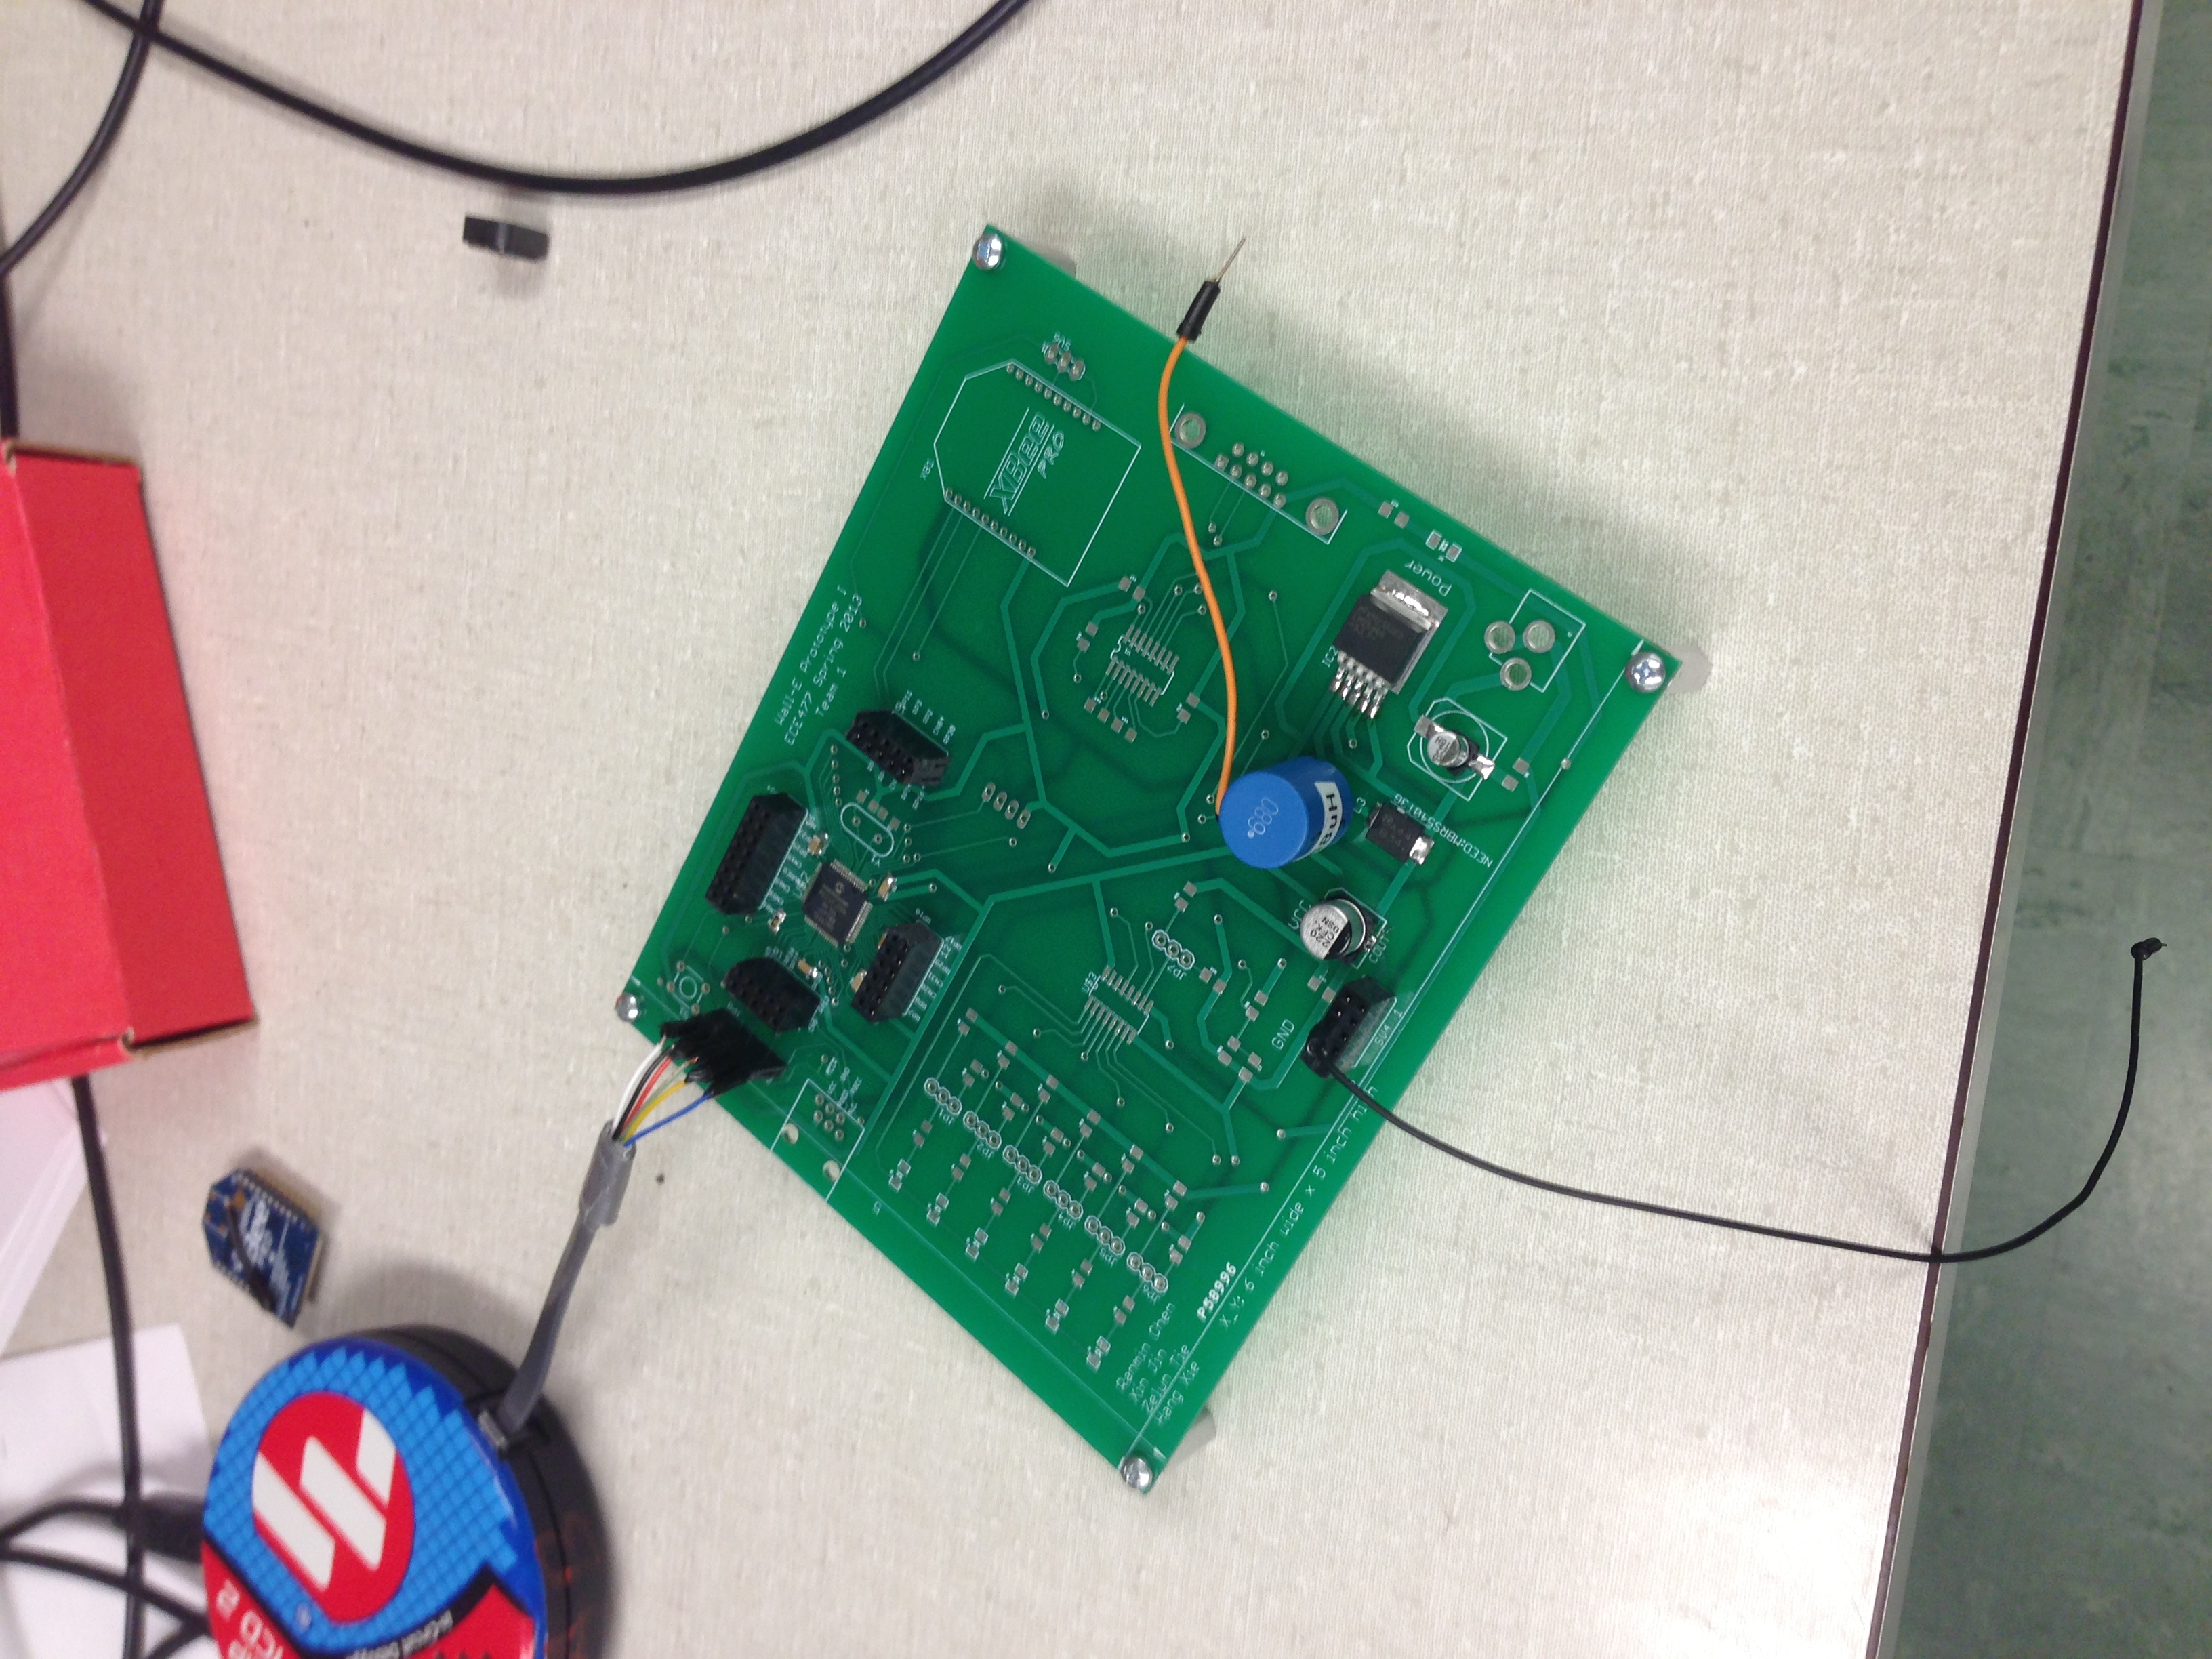 Xin Jins Lab Notebook Laptop Power Supply Circuit That Hangs Up In Some Come With The Idea It Will Work Better If I Put Pcb Lower Deck And Vertically Insert H Bridge Breakout Board To Middle